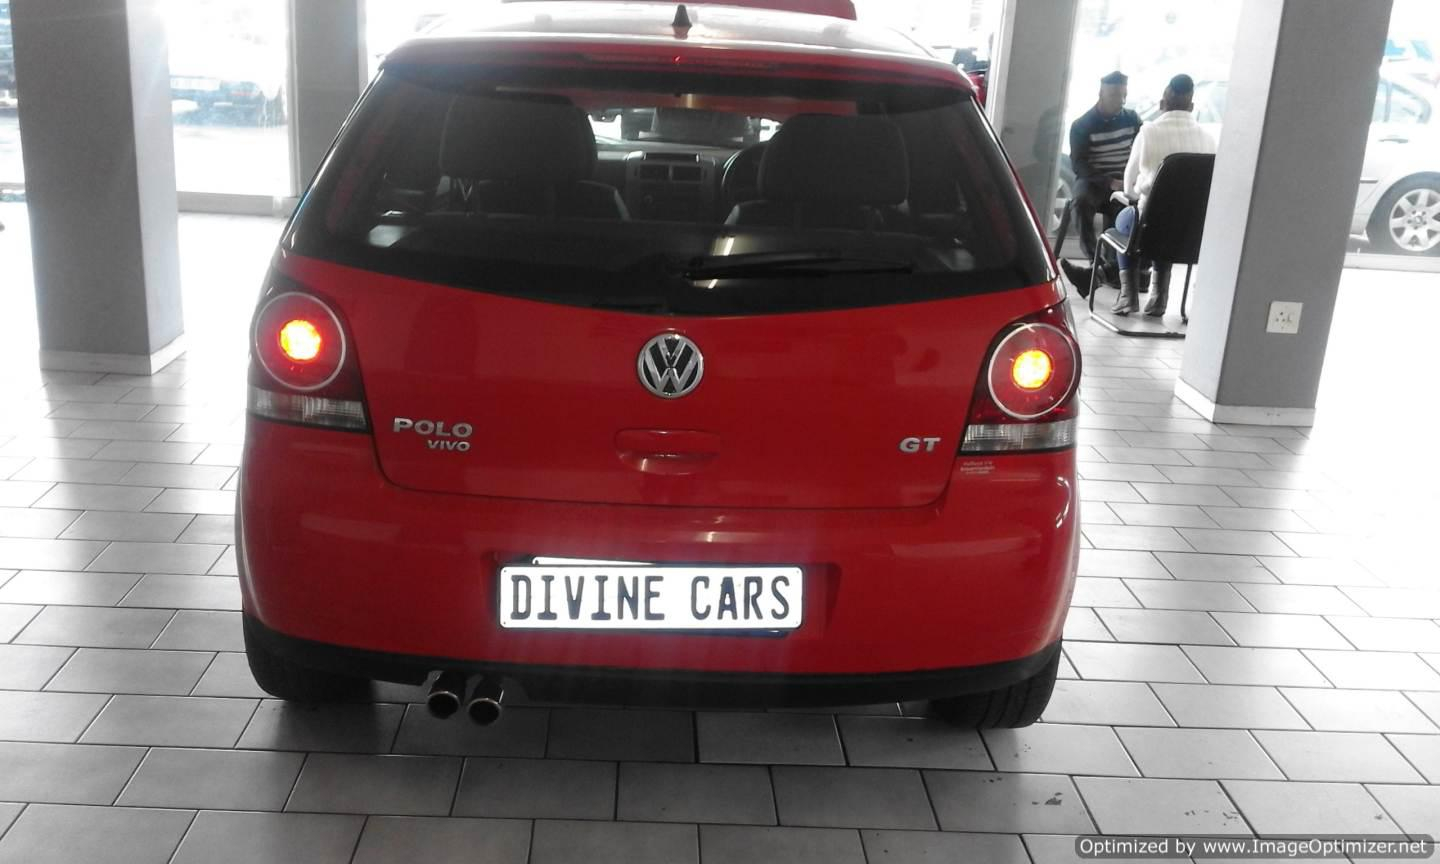 Used Polo Vivo Gt For Sale In South Africa - Prism